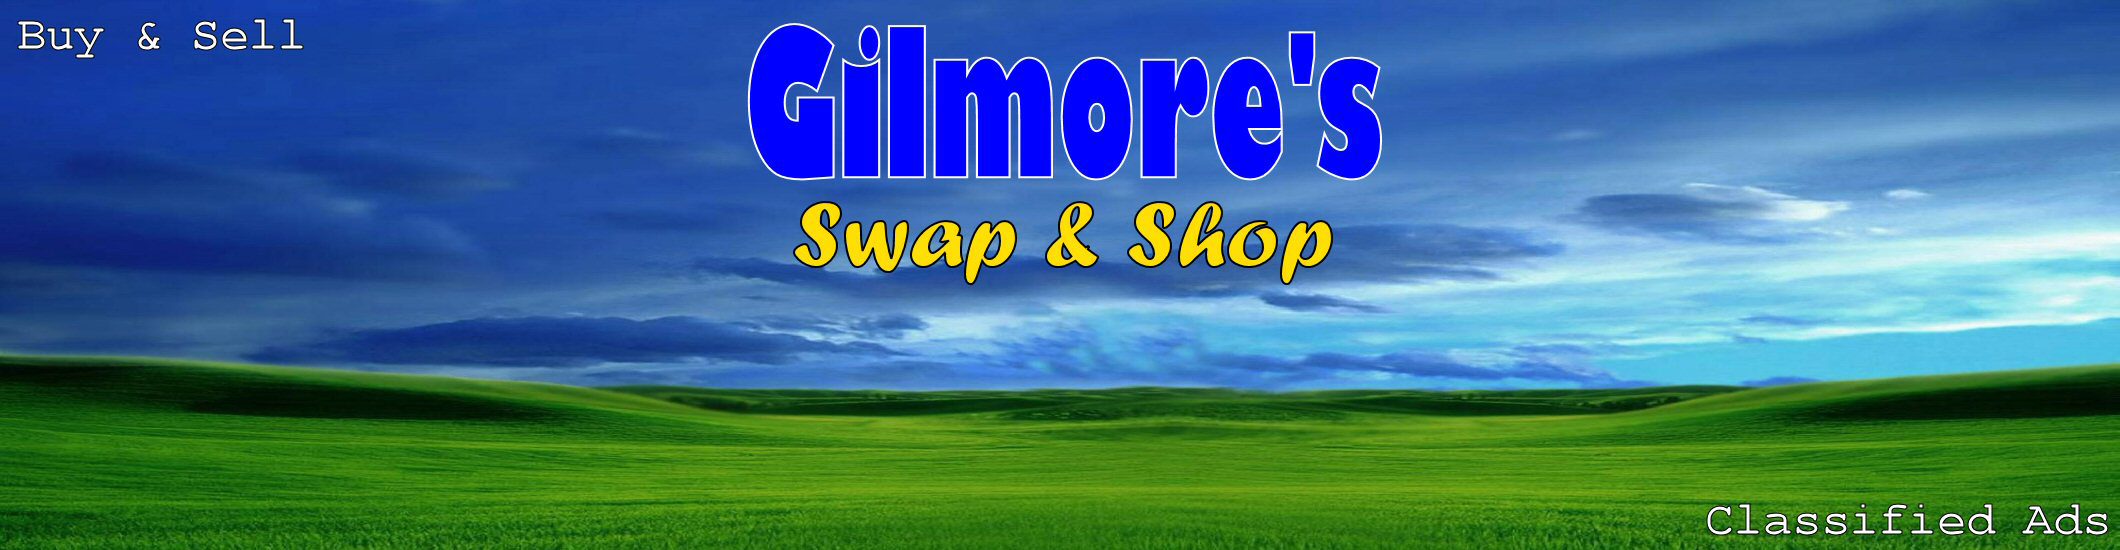 Gilmore's Classified Ads